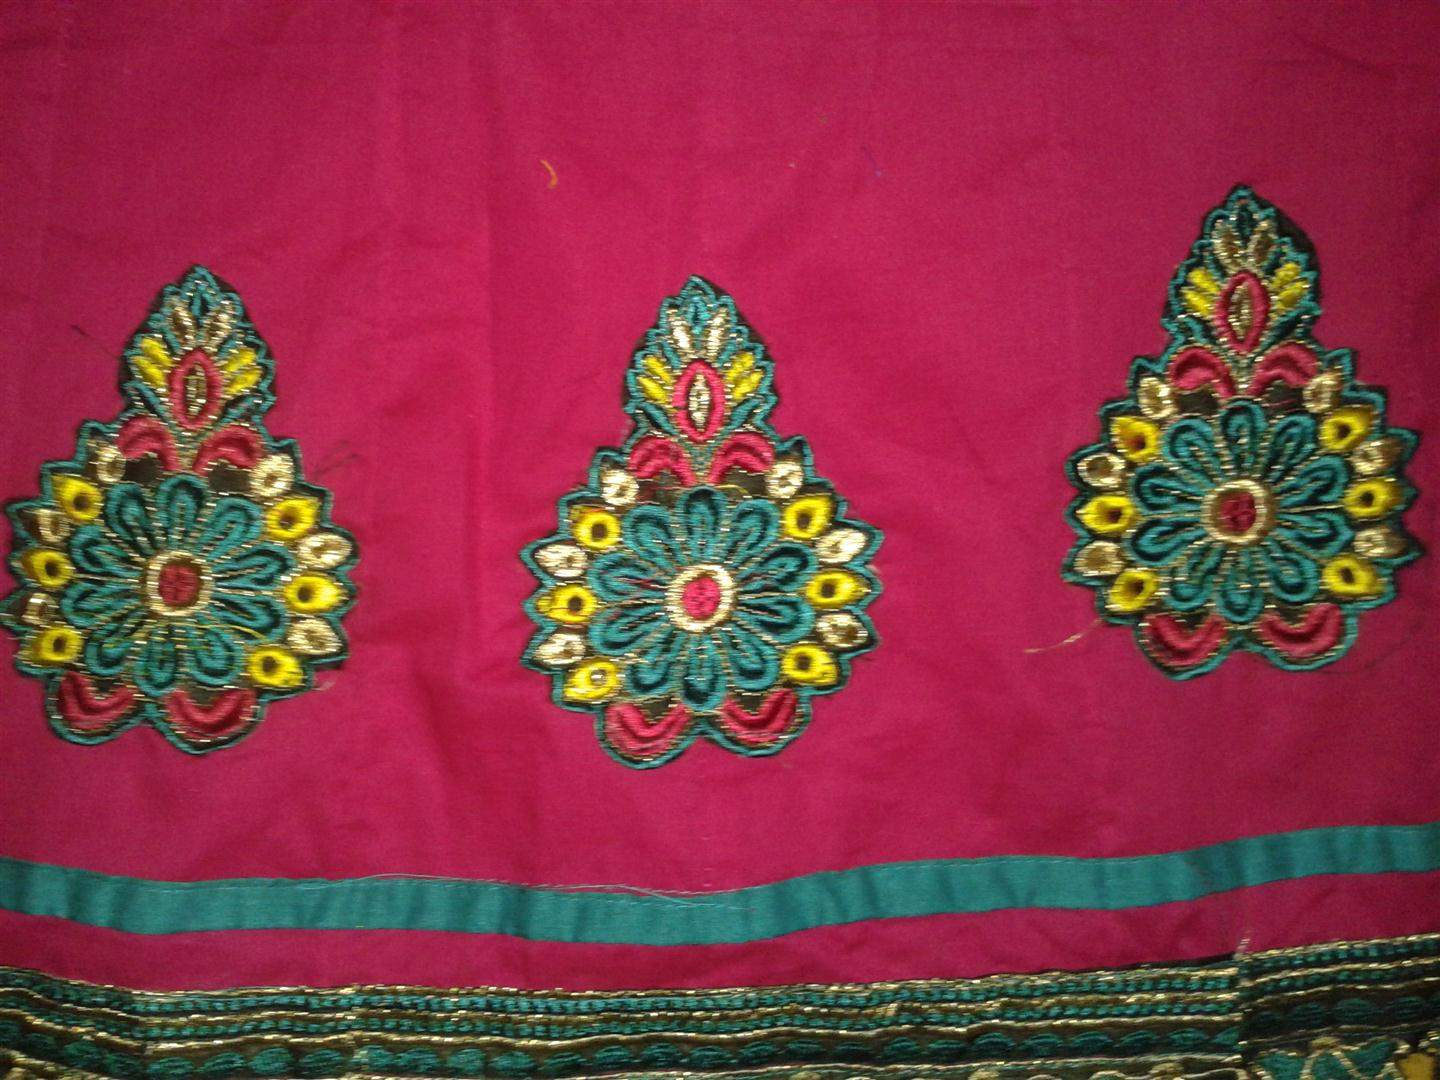 http://img.techshristi.com/images/embroideryshristi/20140129193427large.jpg